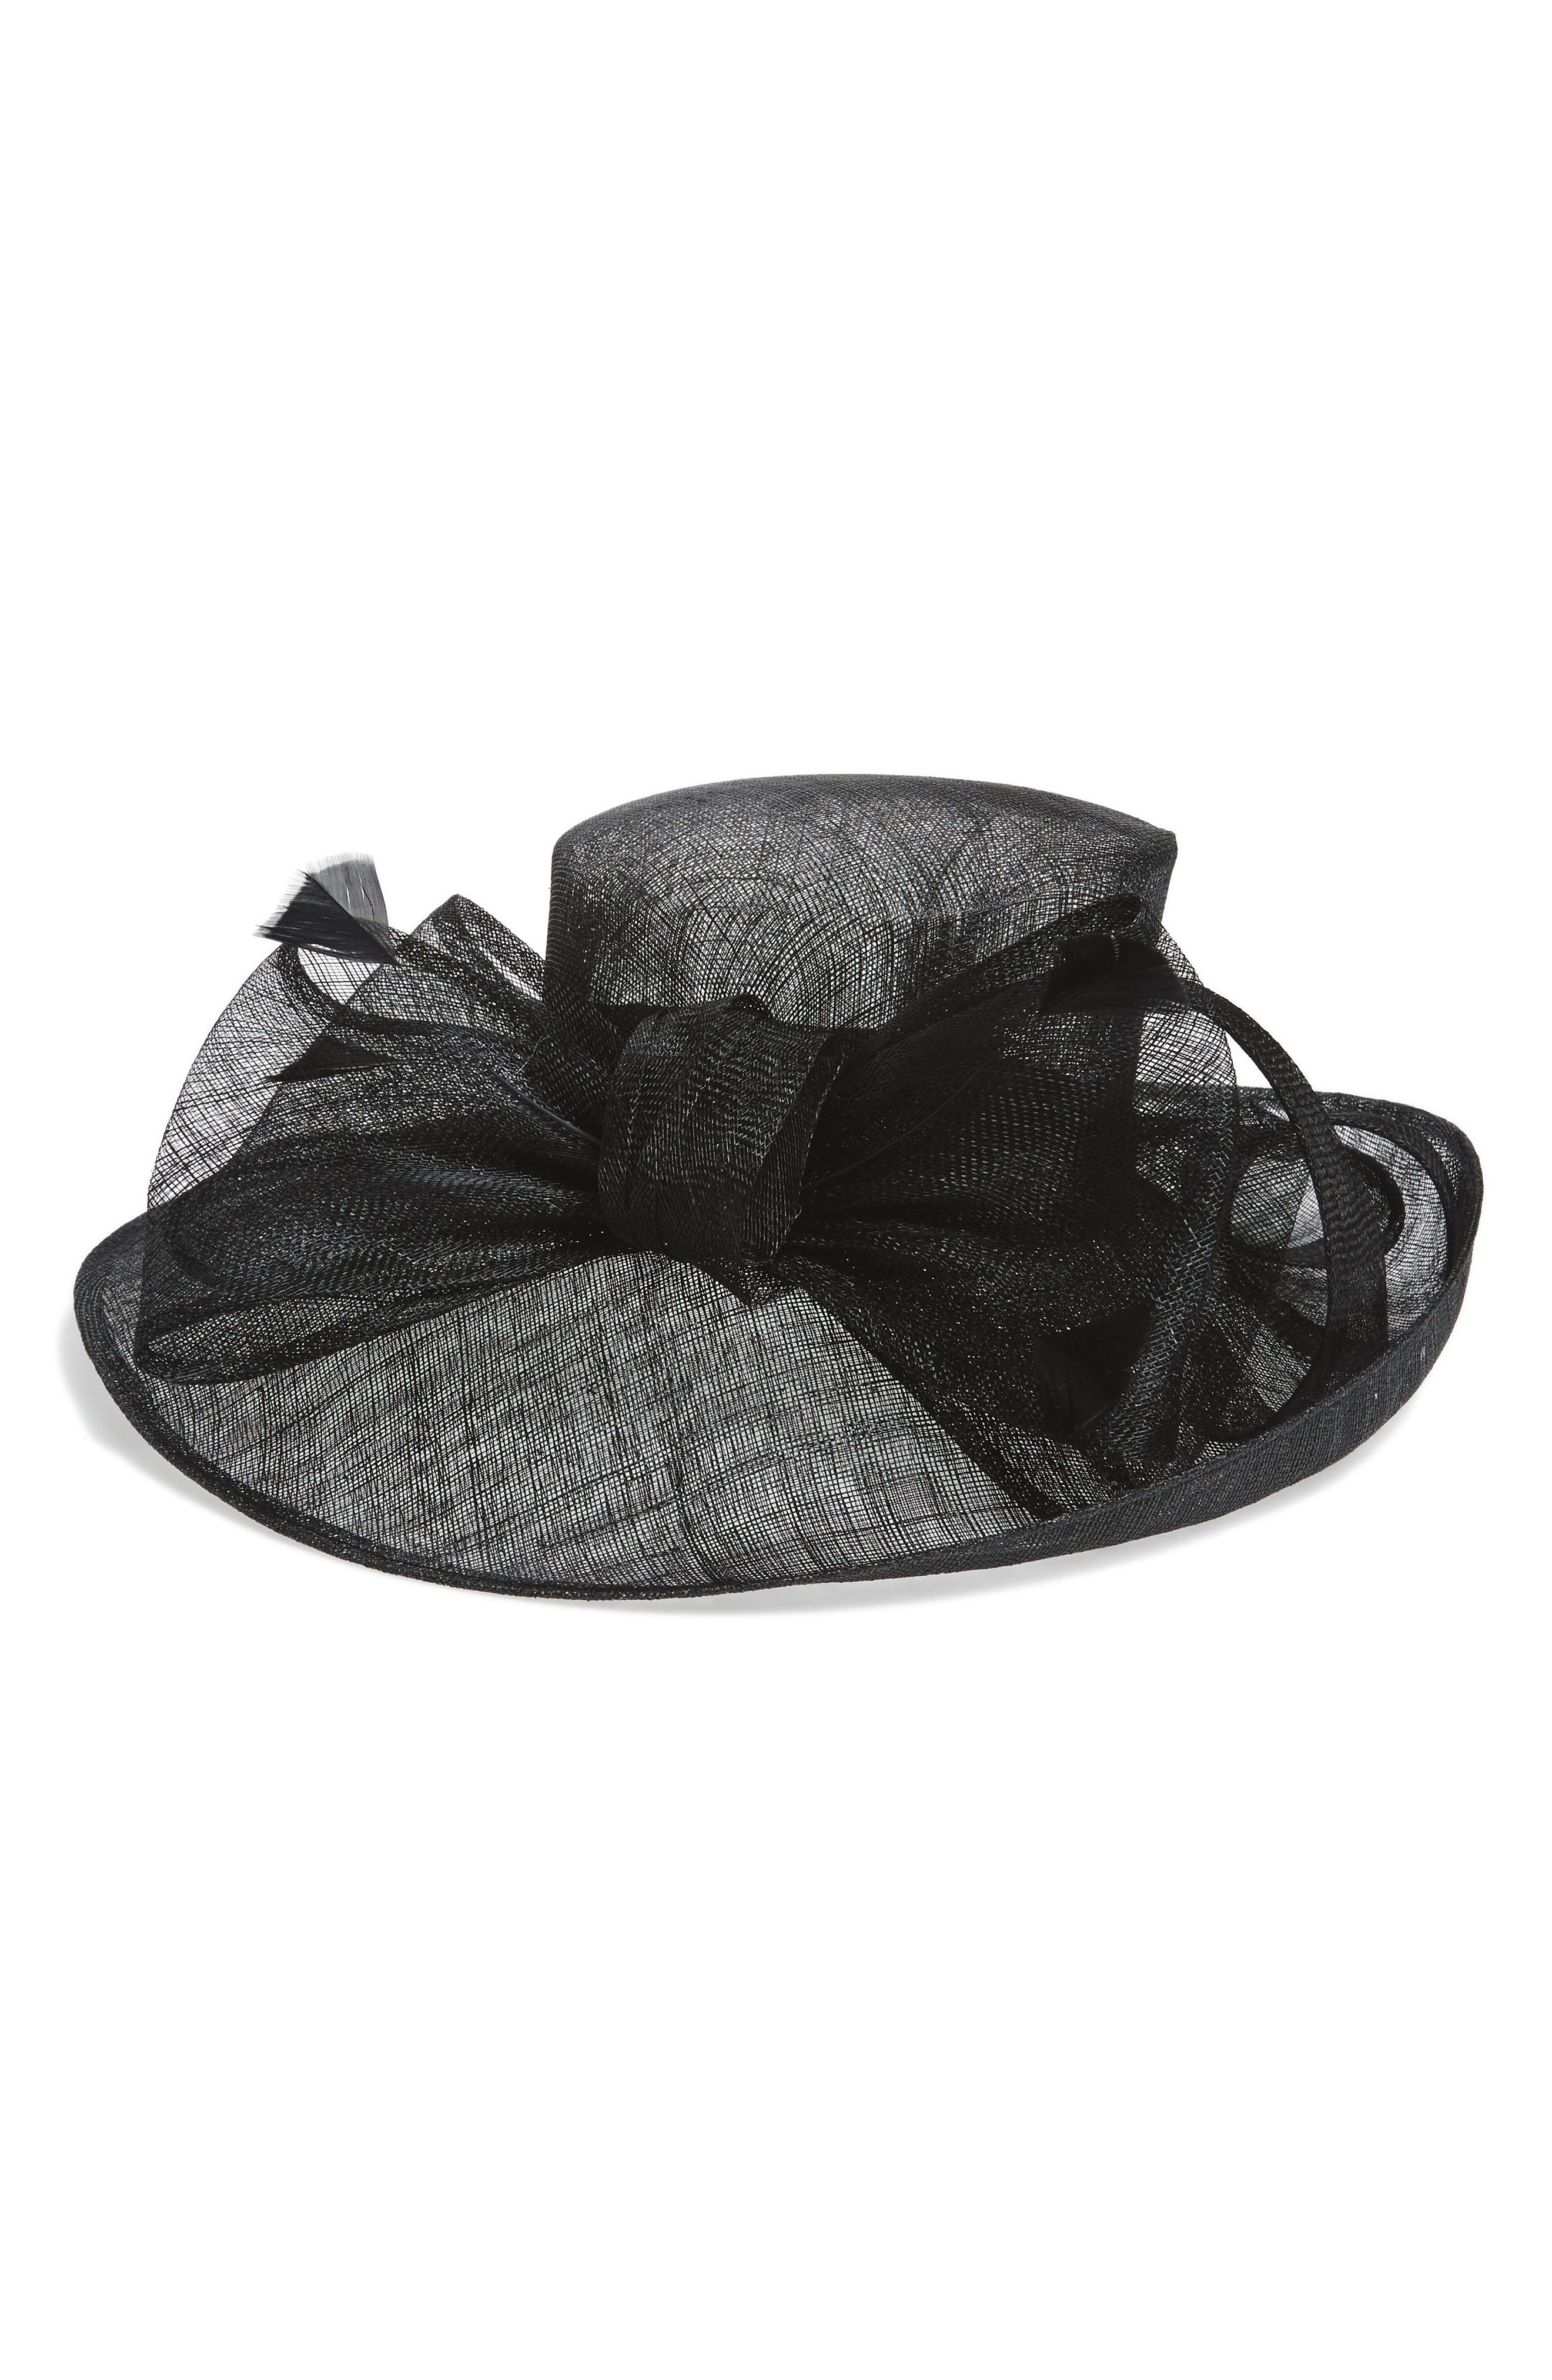 Main Image - Nordstrom Sinamay Bow Derby Hat